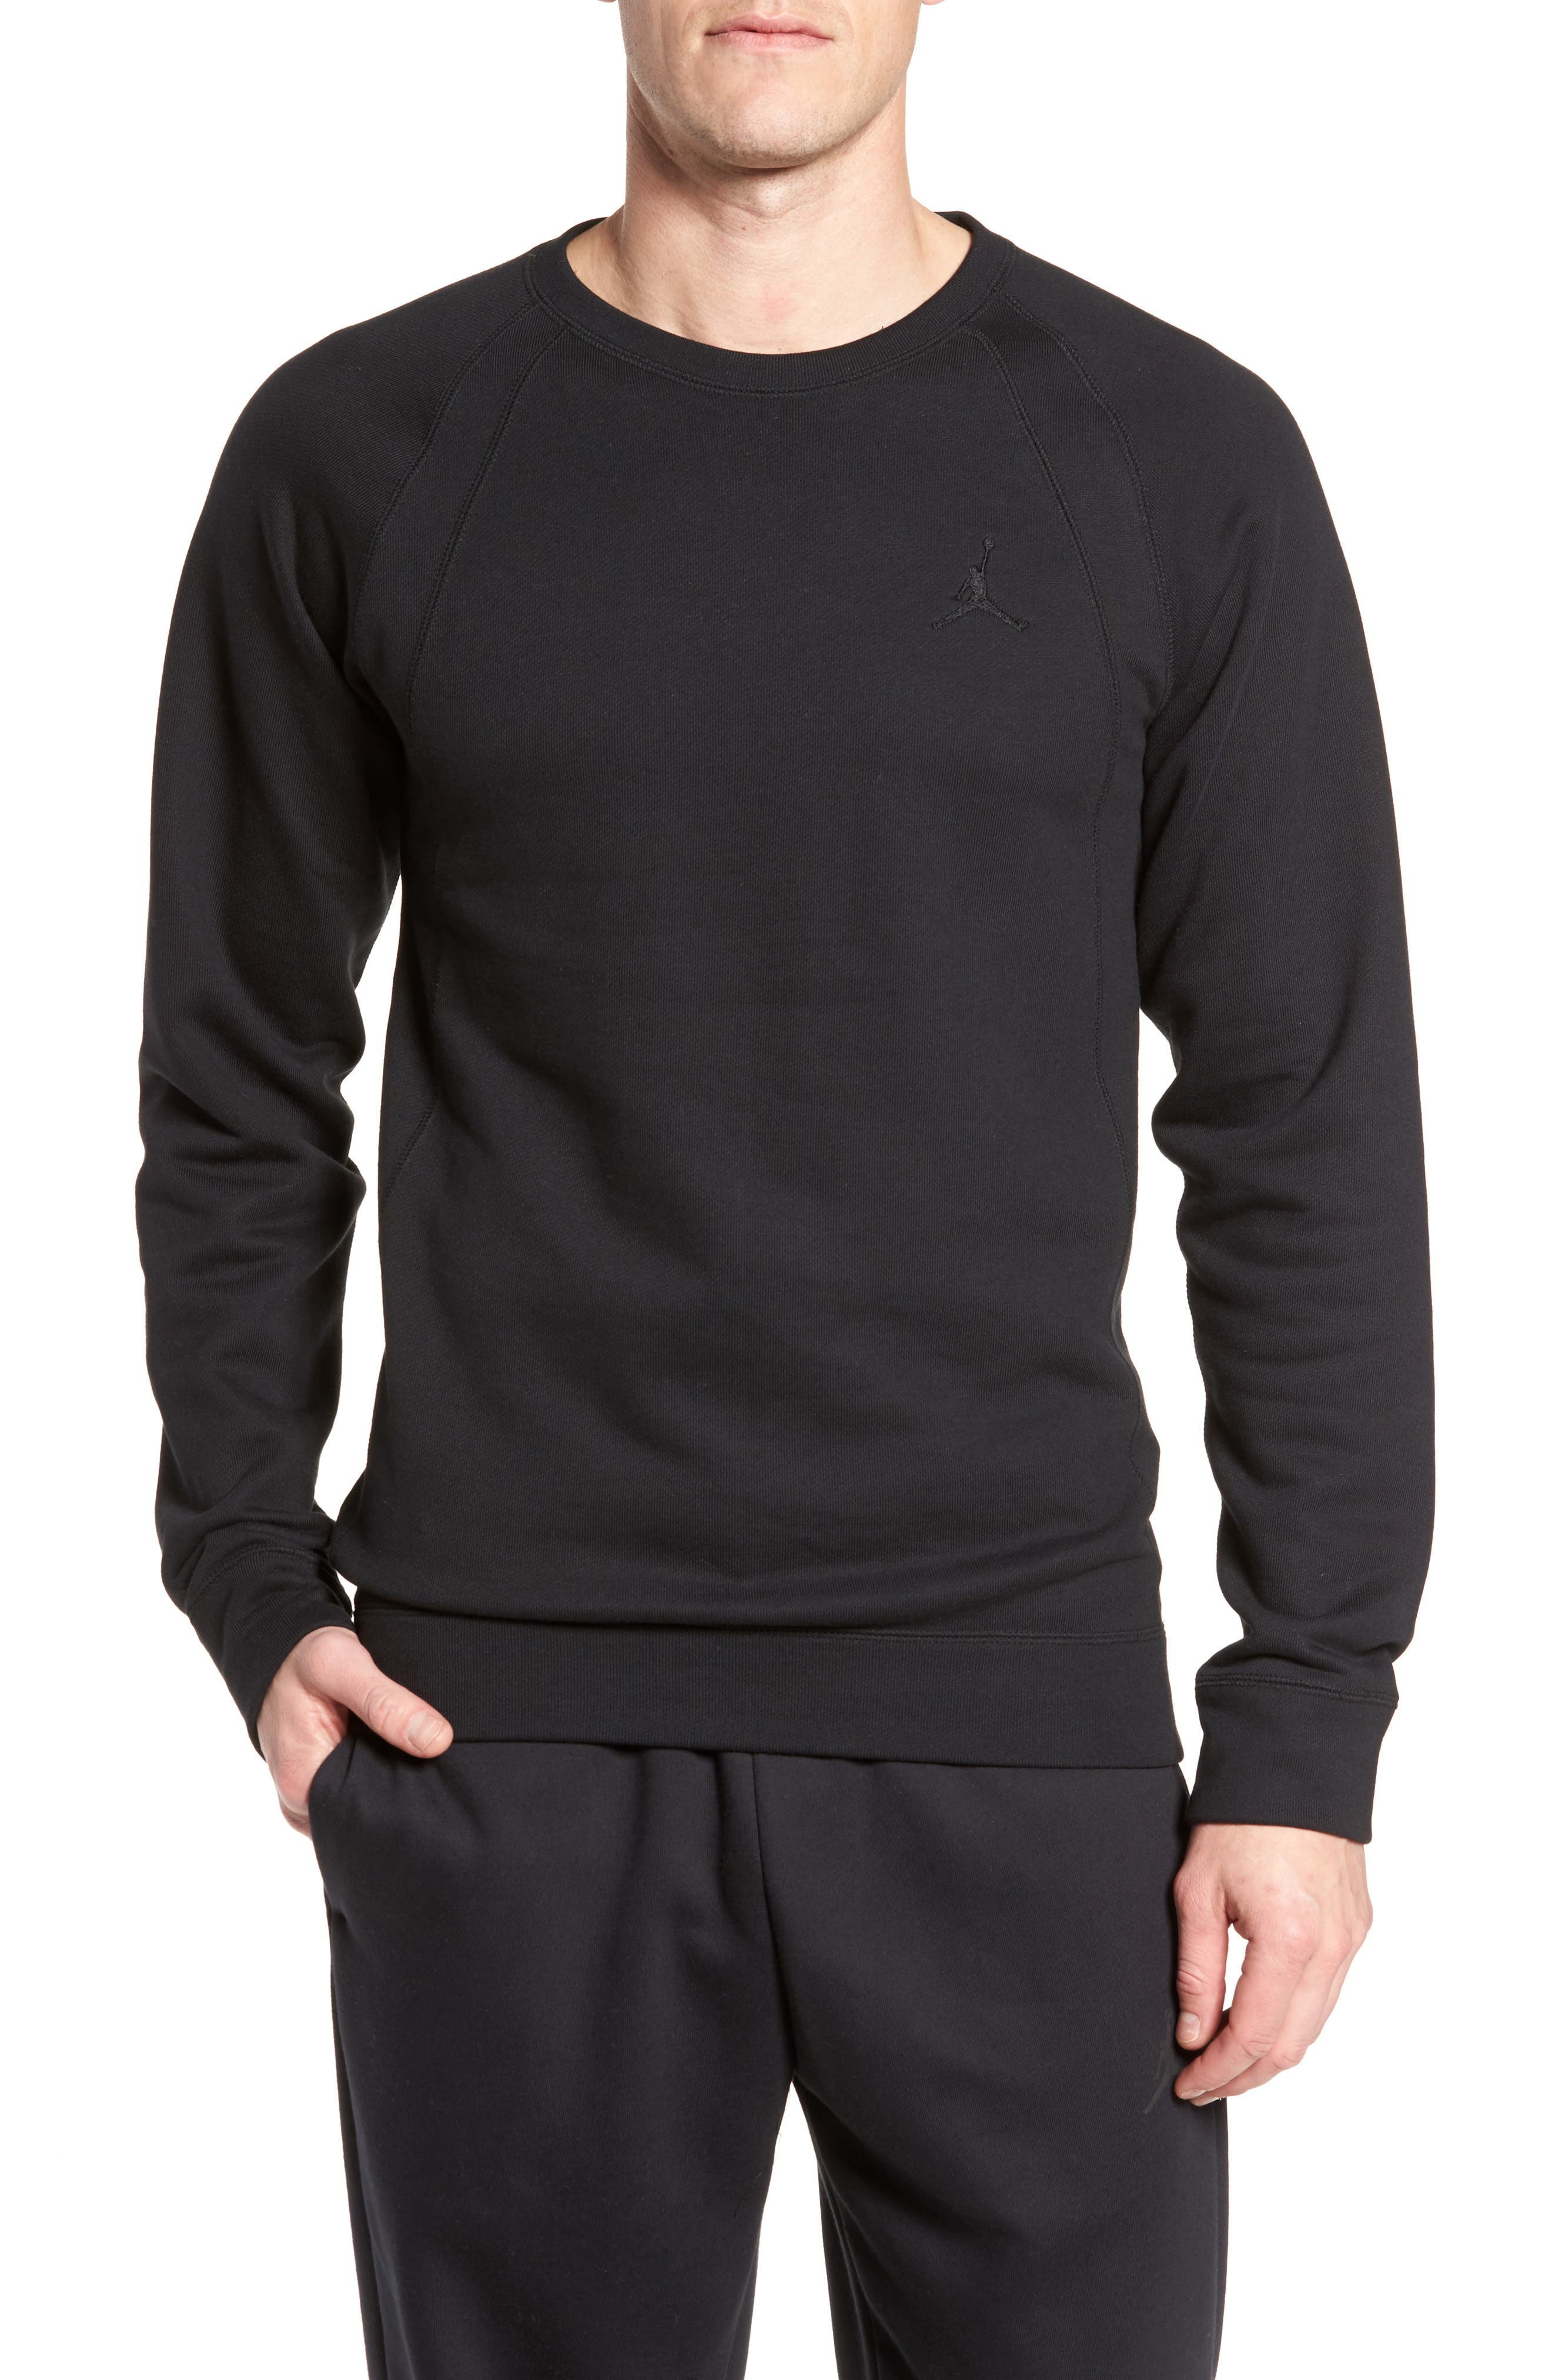 Jordan Sportswear Wings Pullover,                             Main thumbnail 1, color,                             Black/ Black